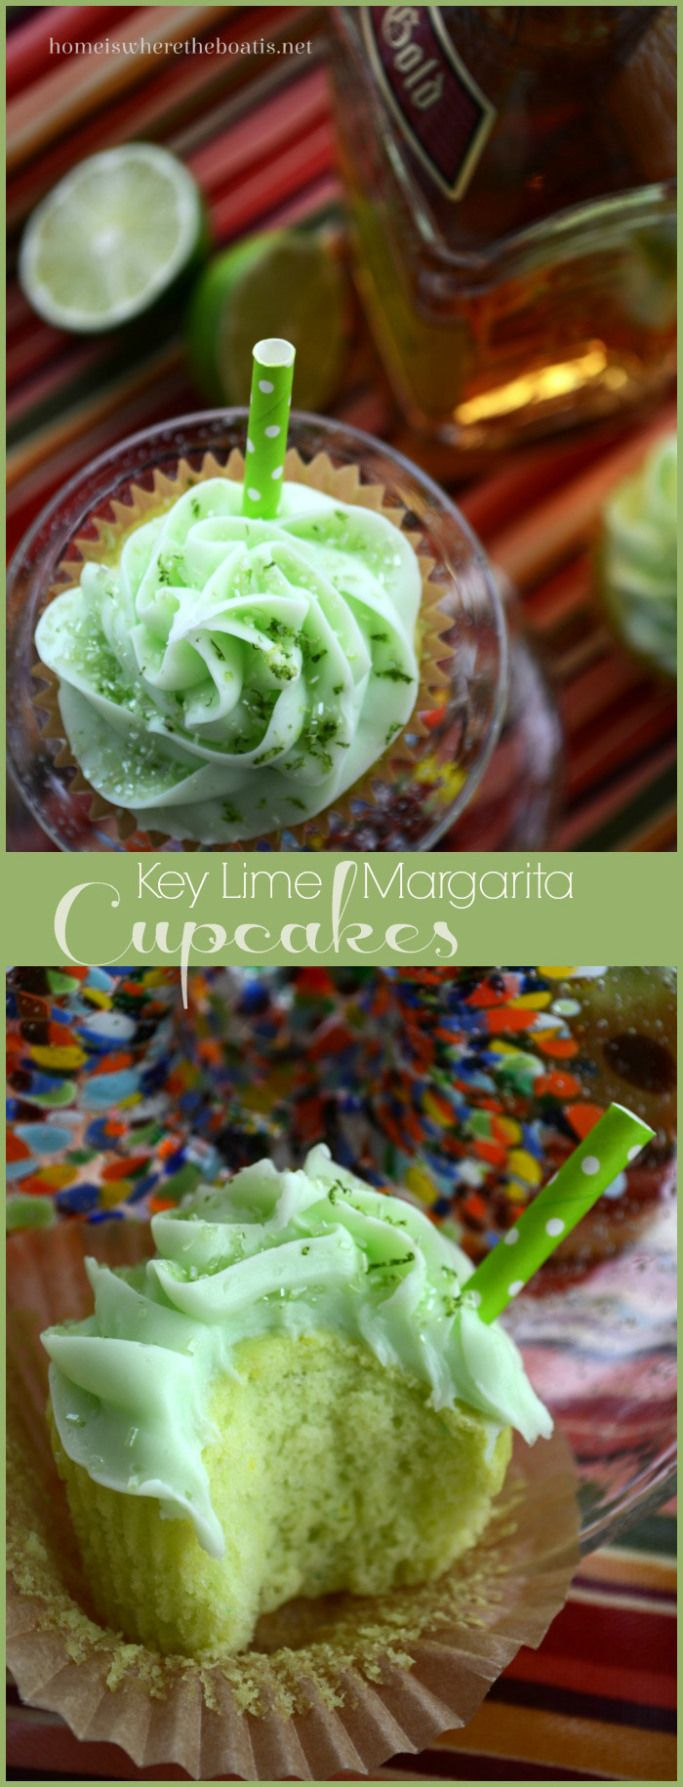 Key Lime Margarita Cupcakes! These cupcakes are muy bueno and would be fun for a summer fiesta too! | homeiswheretheboatis.net #CincodeMayo #cupcakes